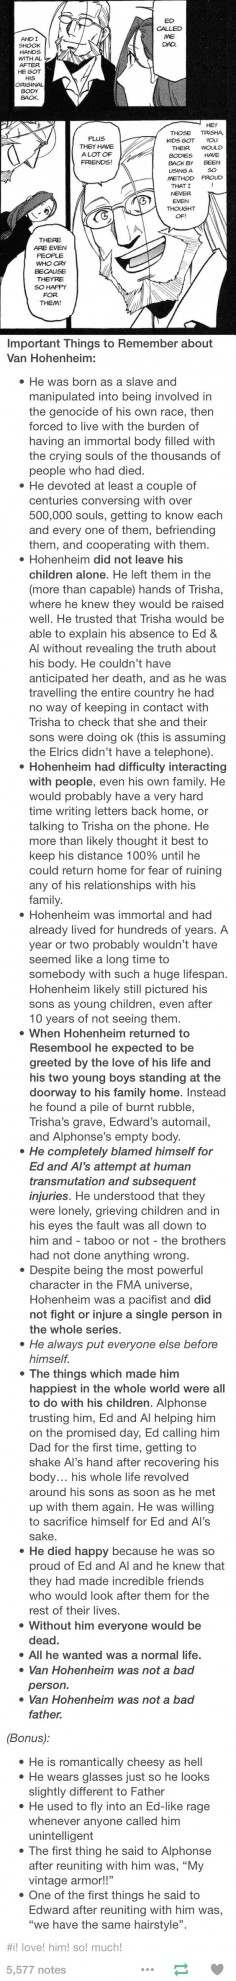 Why Hohenheim is my favorite and gives me all the feels. Plus he reminds me of my own dad. :)